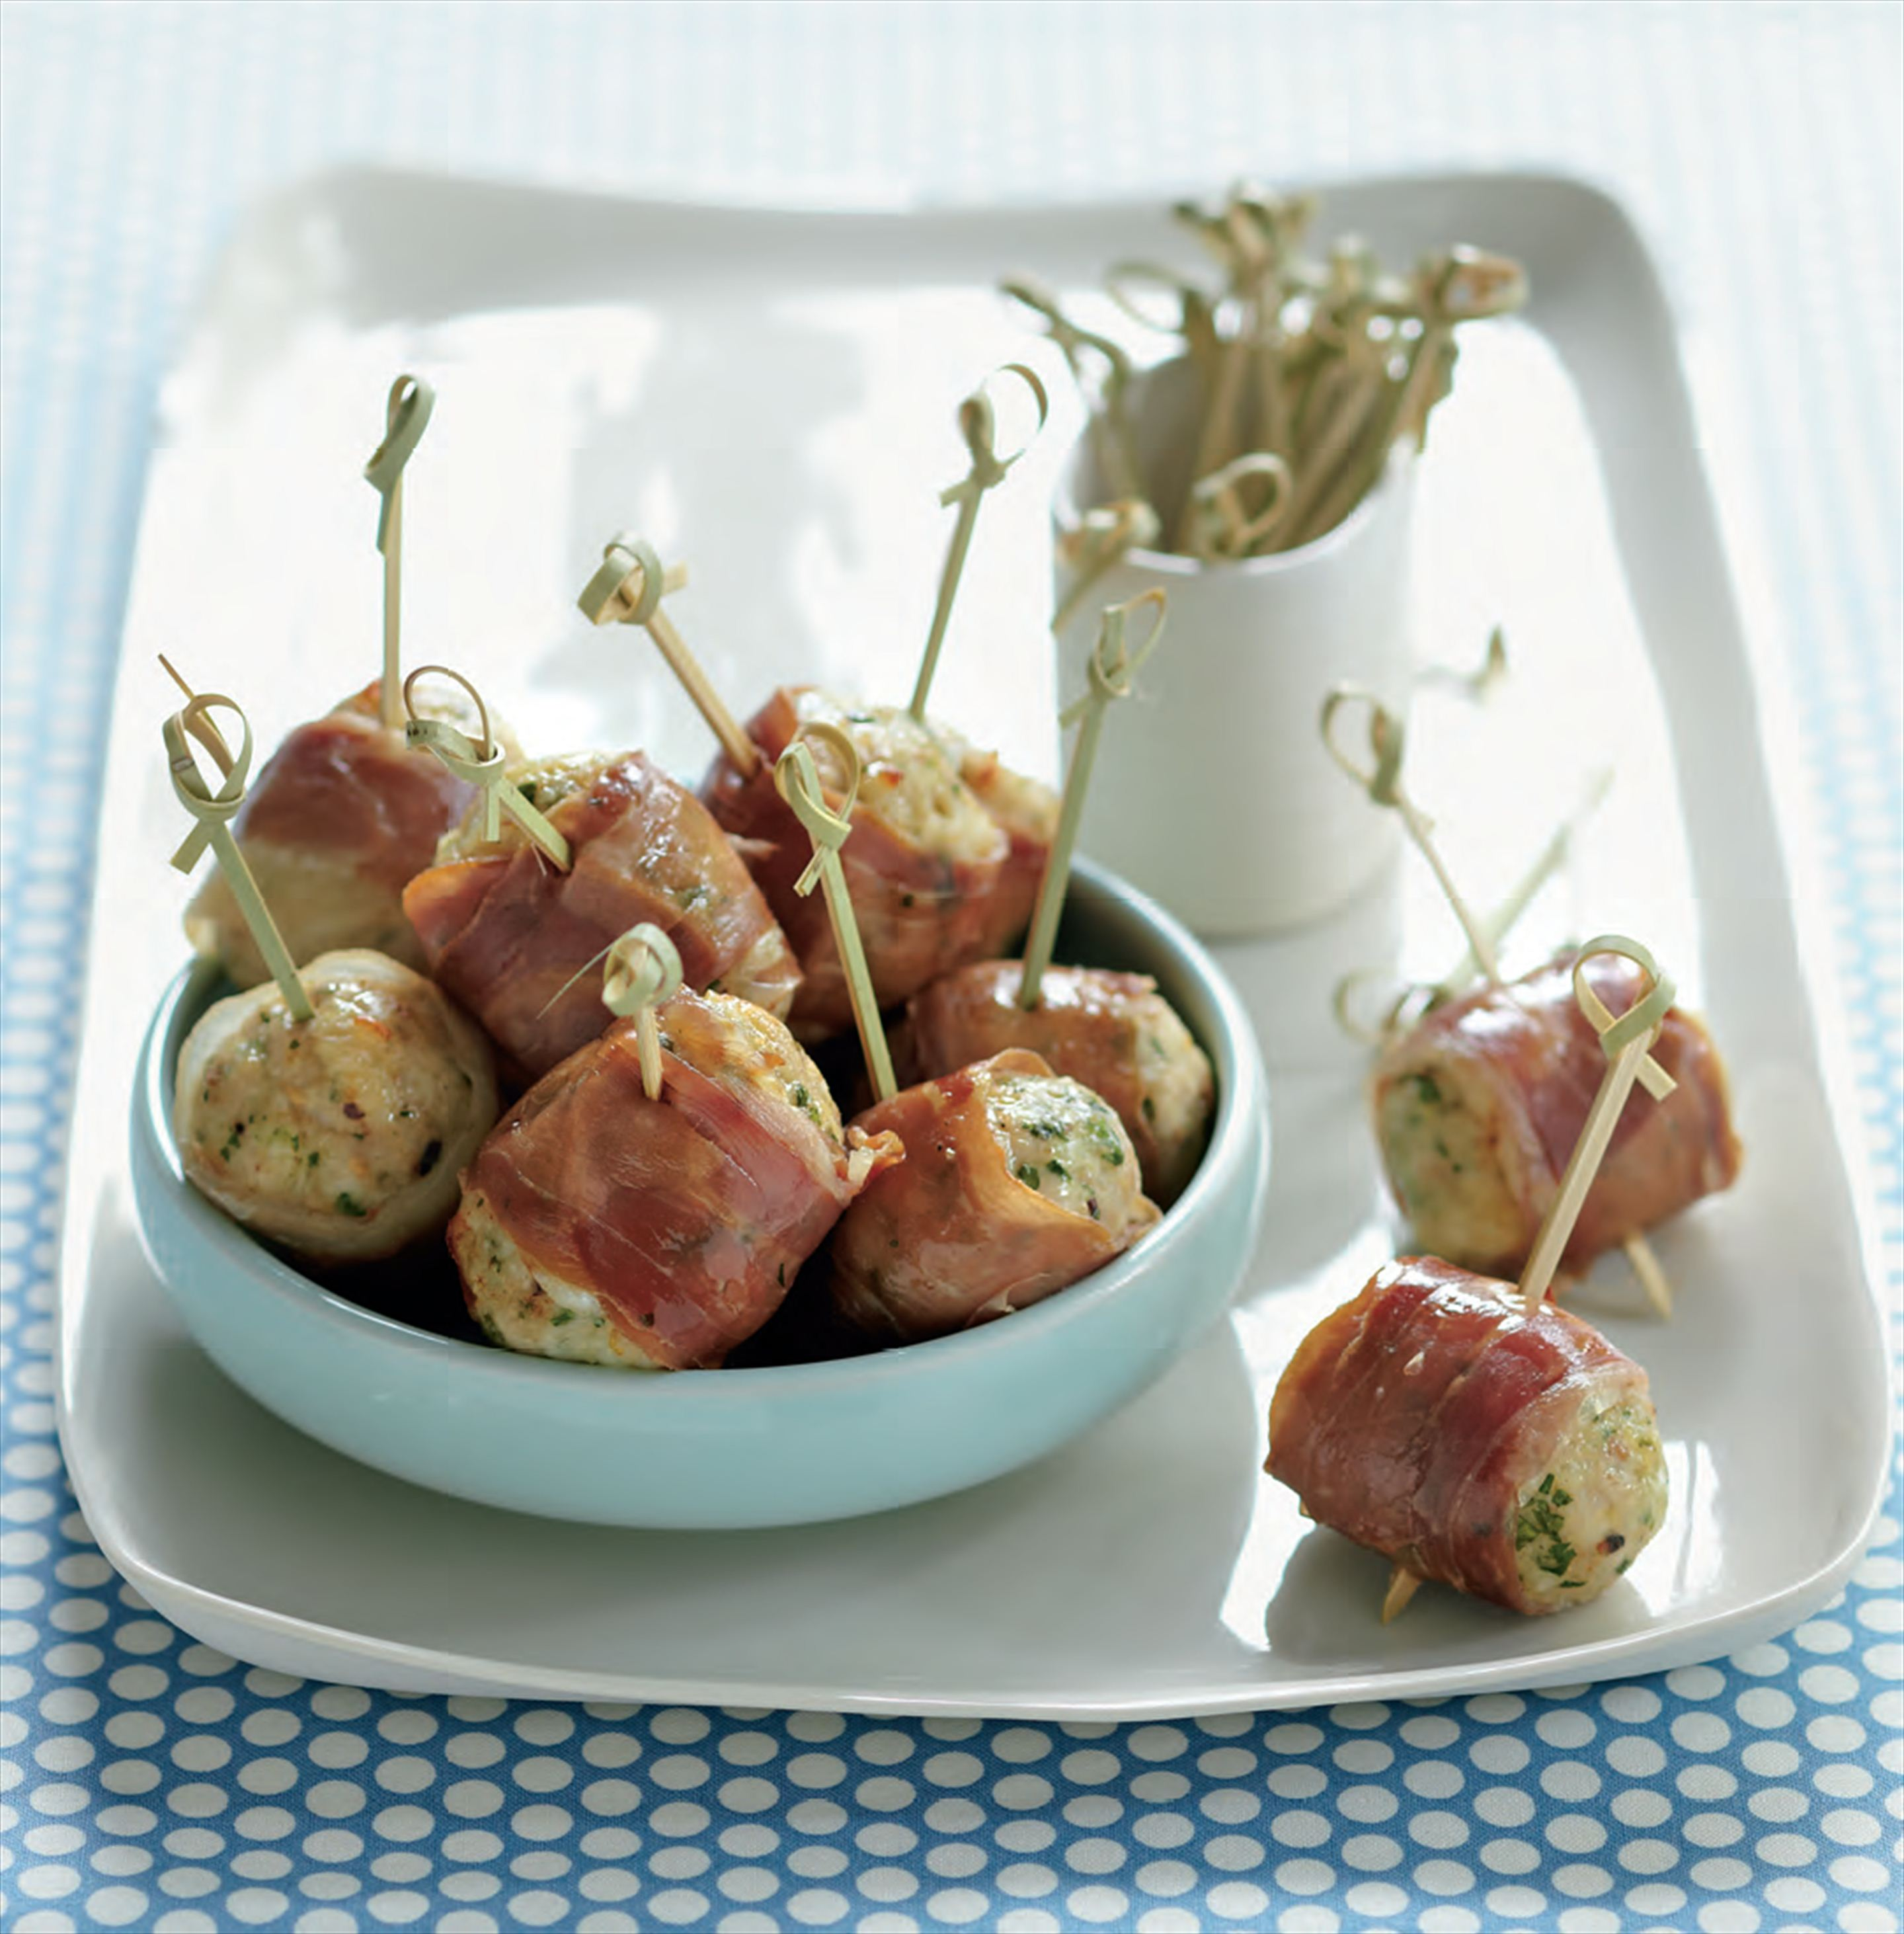 Chicken meatballs wrapped in prosciutto